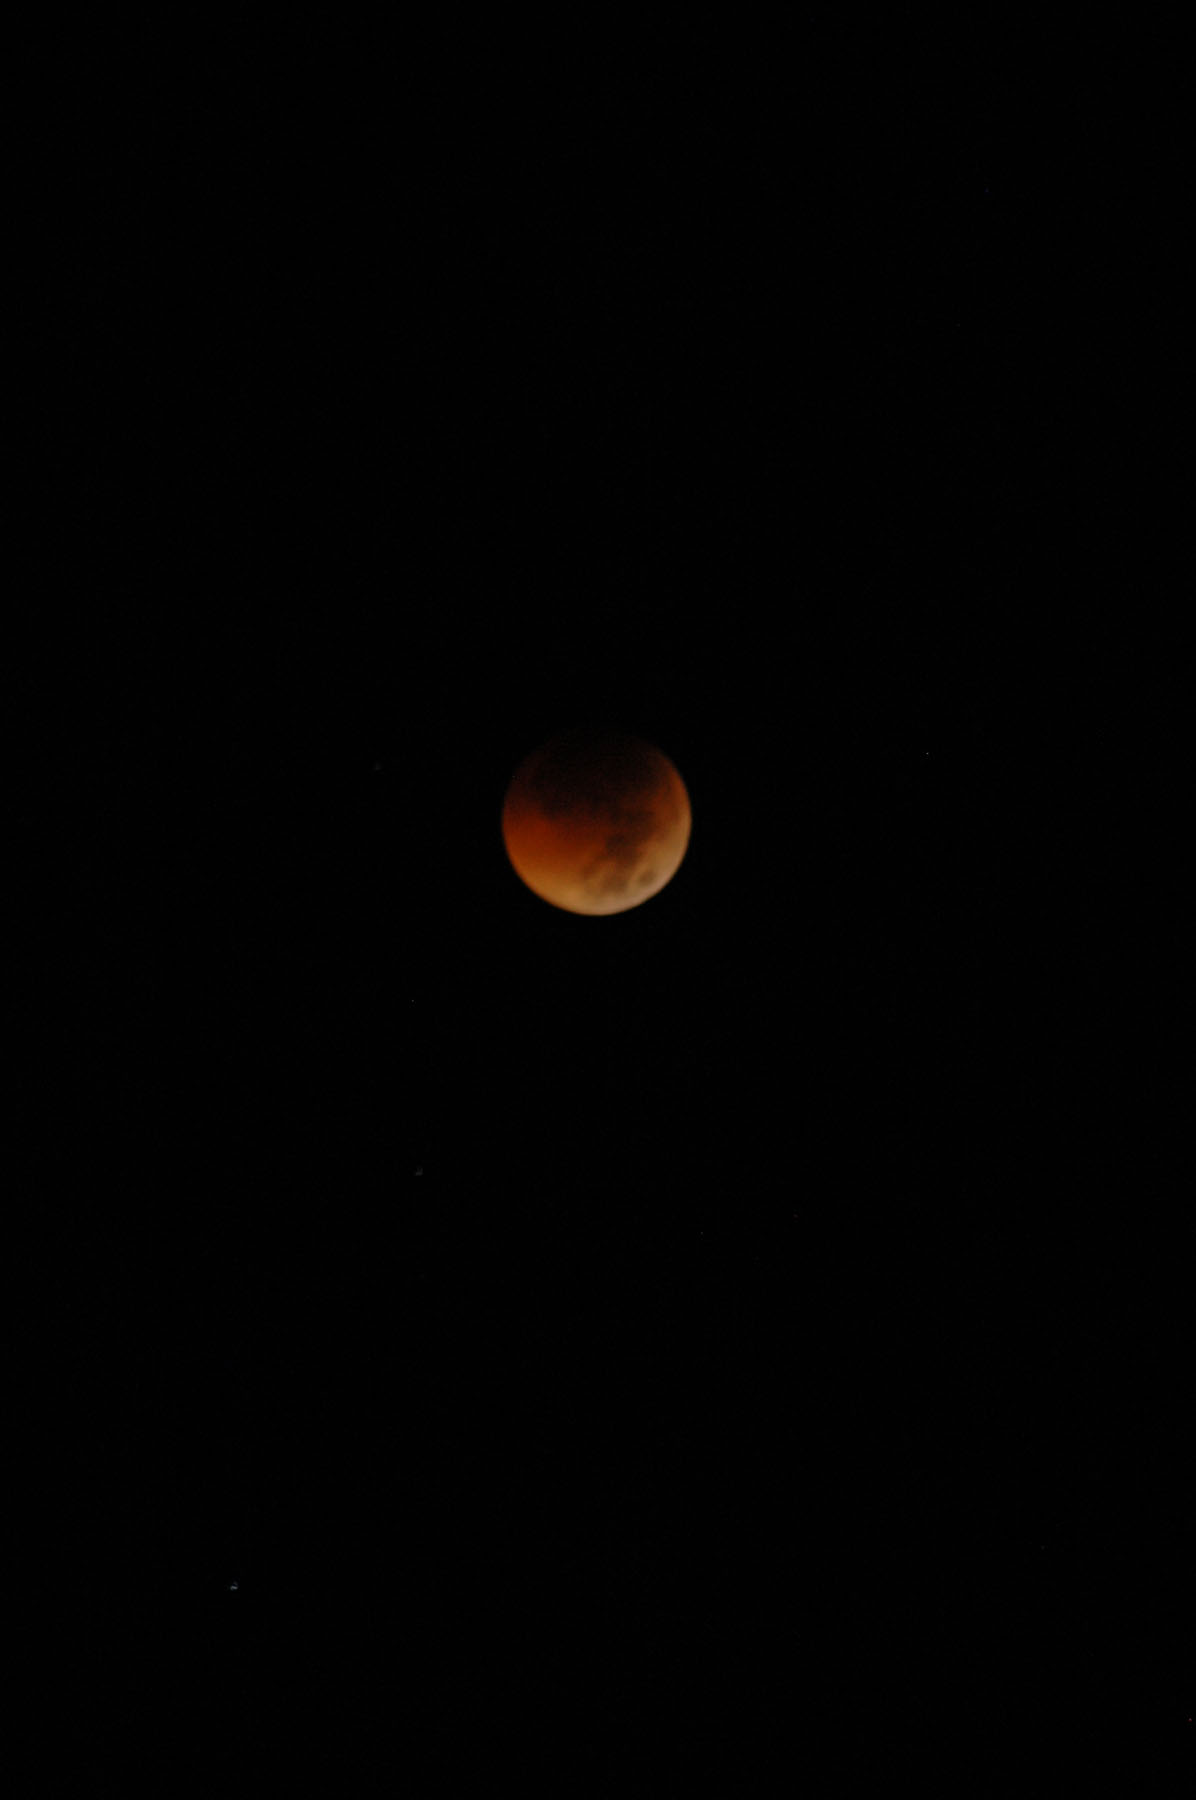 Total Lunar Eclipse of June 15, 2011: Yogyakarta, Java